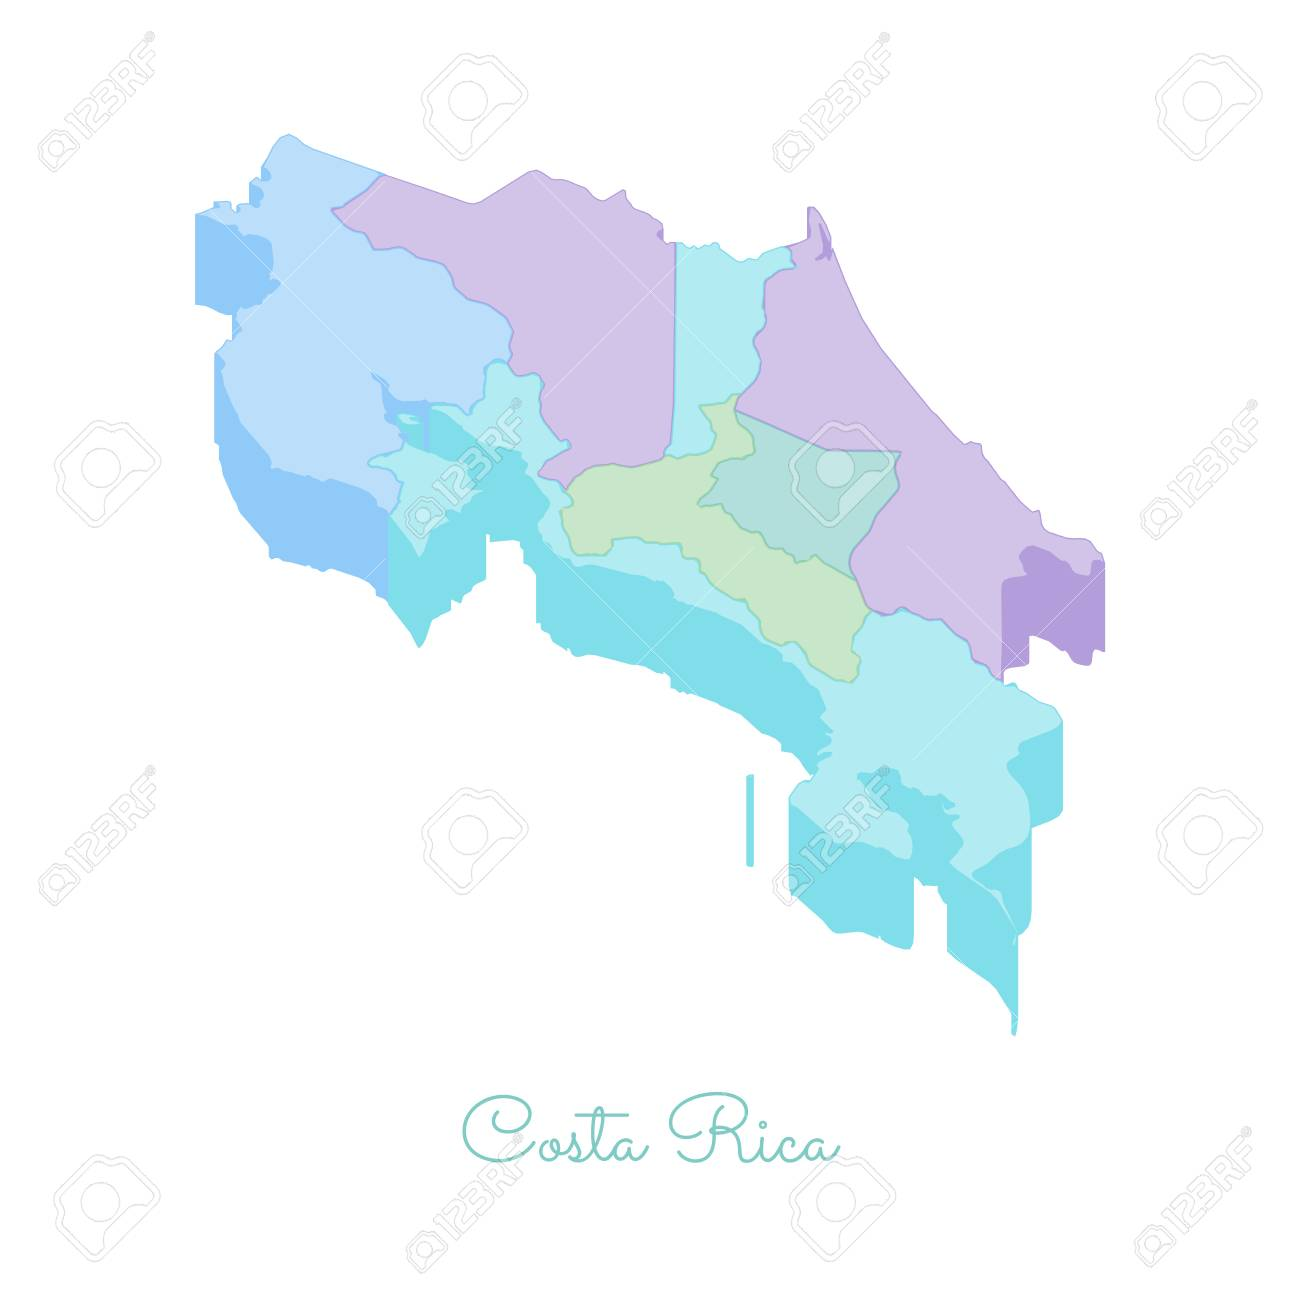 Costa Rica Region Map: Colorful Isometric Top View. Detailed ...